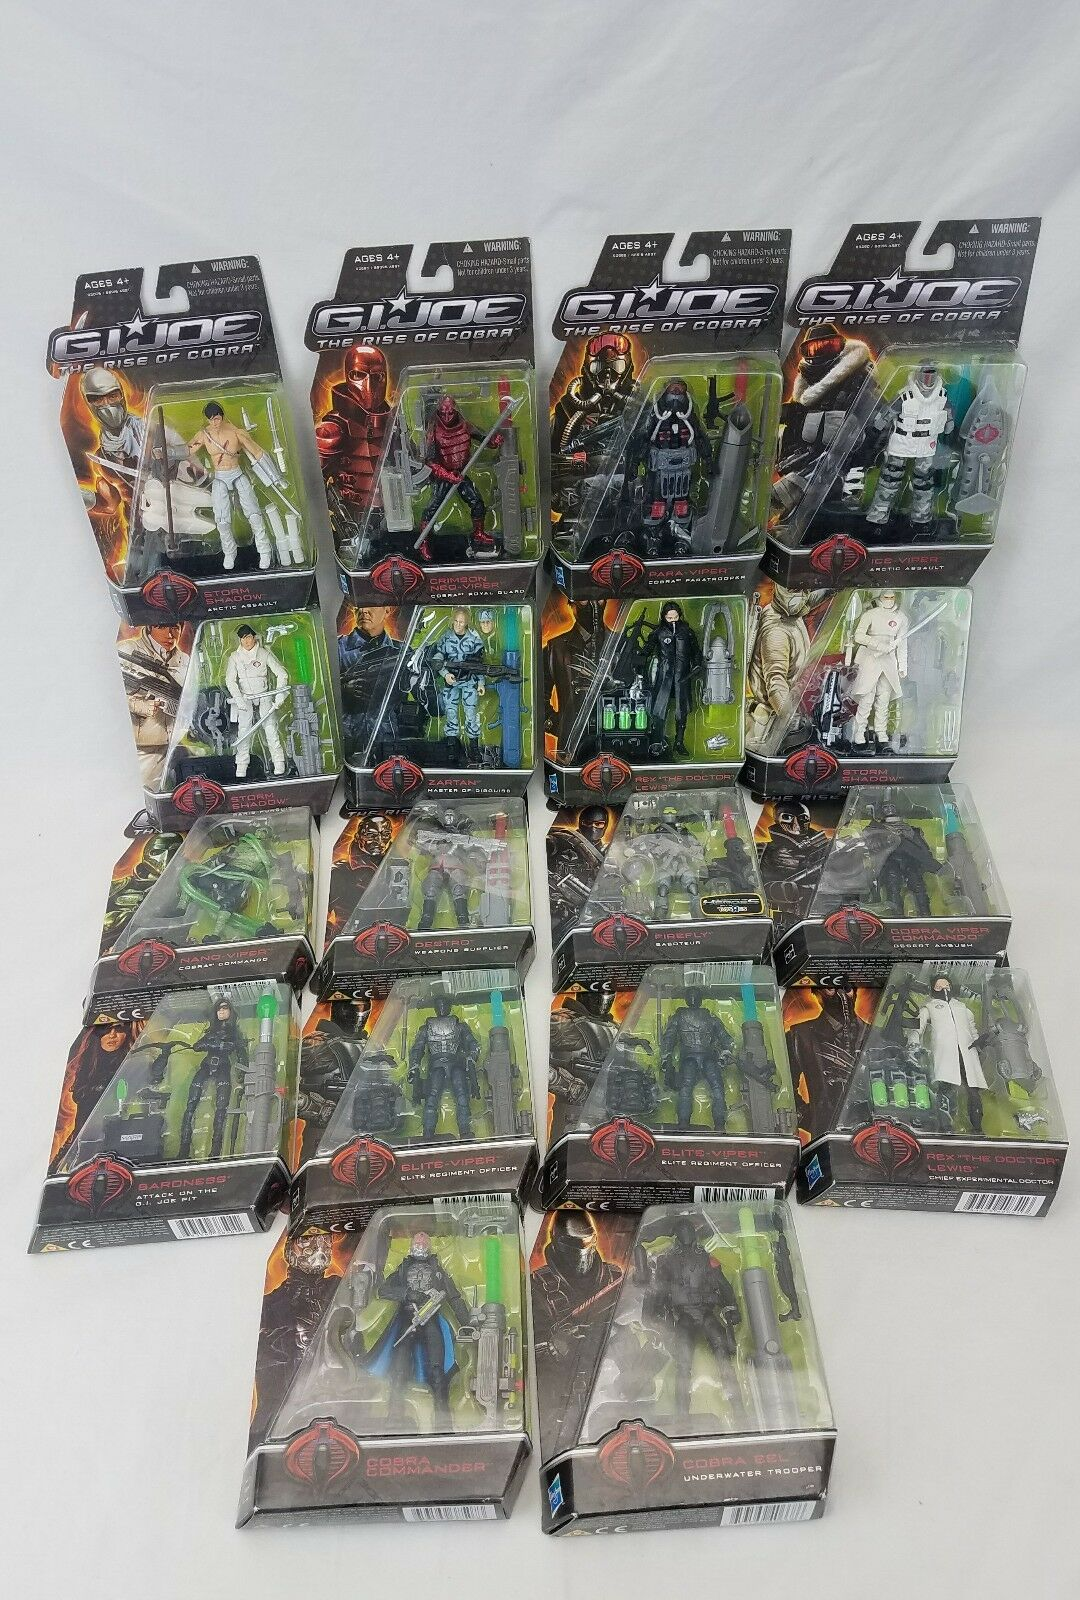 G.I. JOE Rise Of Cobra Hasbro Action Figures Collection Lot of 18 Movie